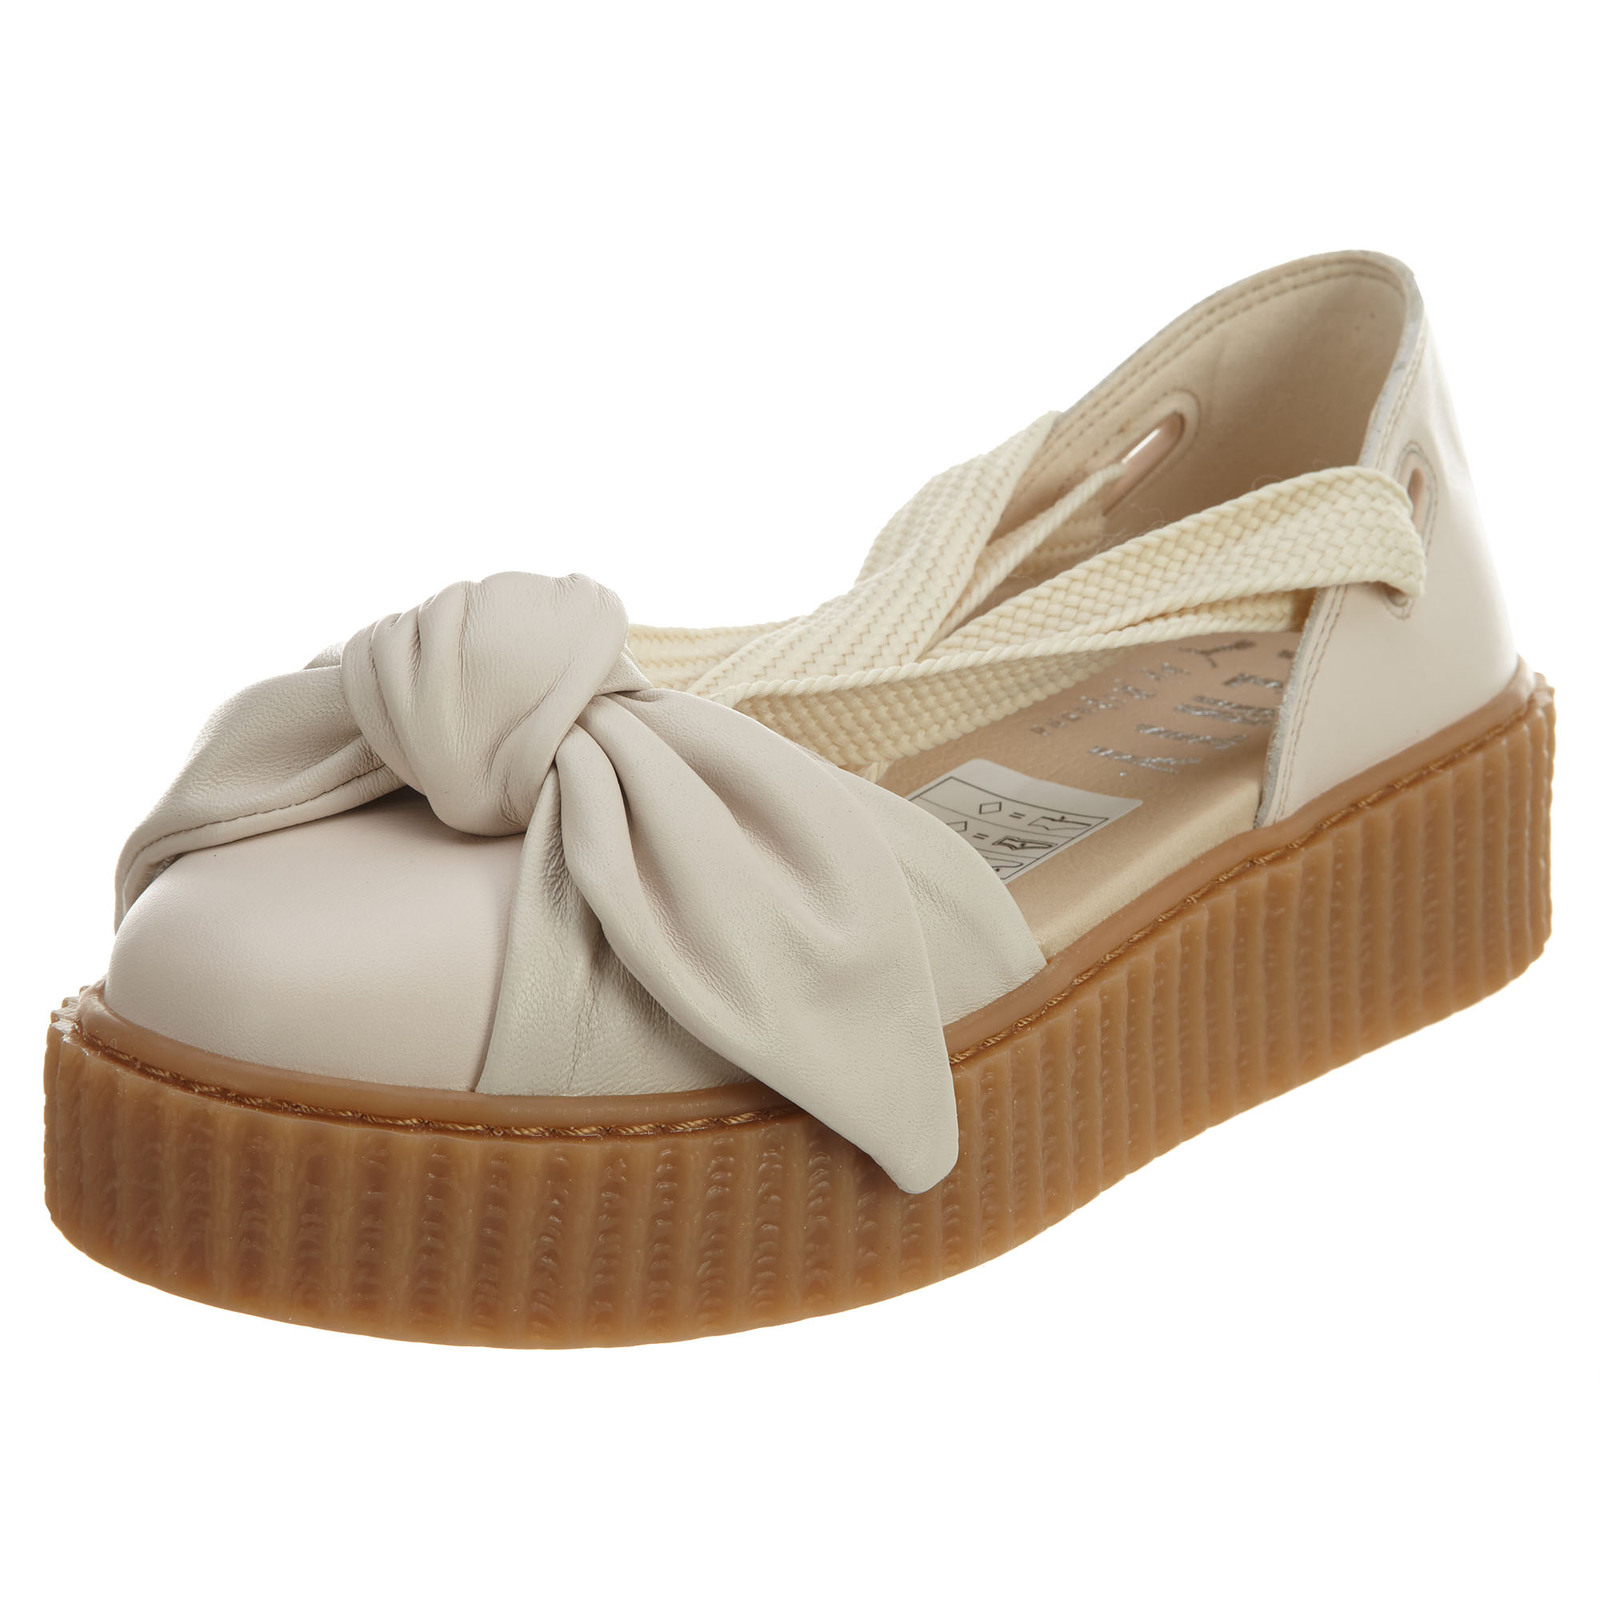 fed621dd8e5 1496998171puma 365794 02 1. 1496998171puma 365794 02 1. Previous. Puma Bow  Creeper Sandal Womens Style ...